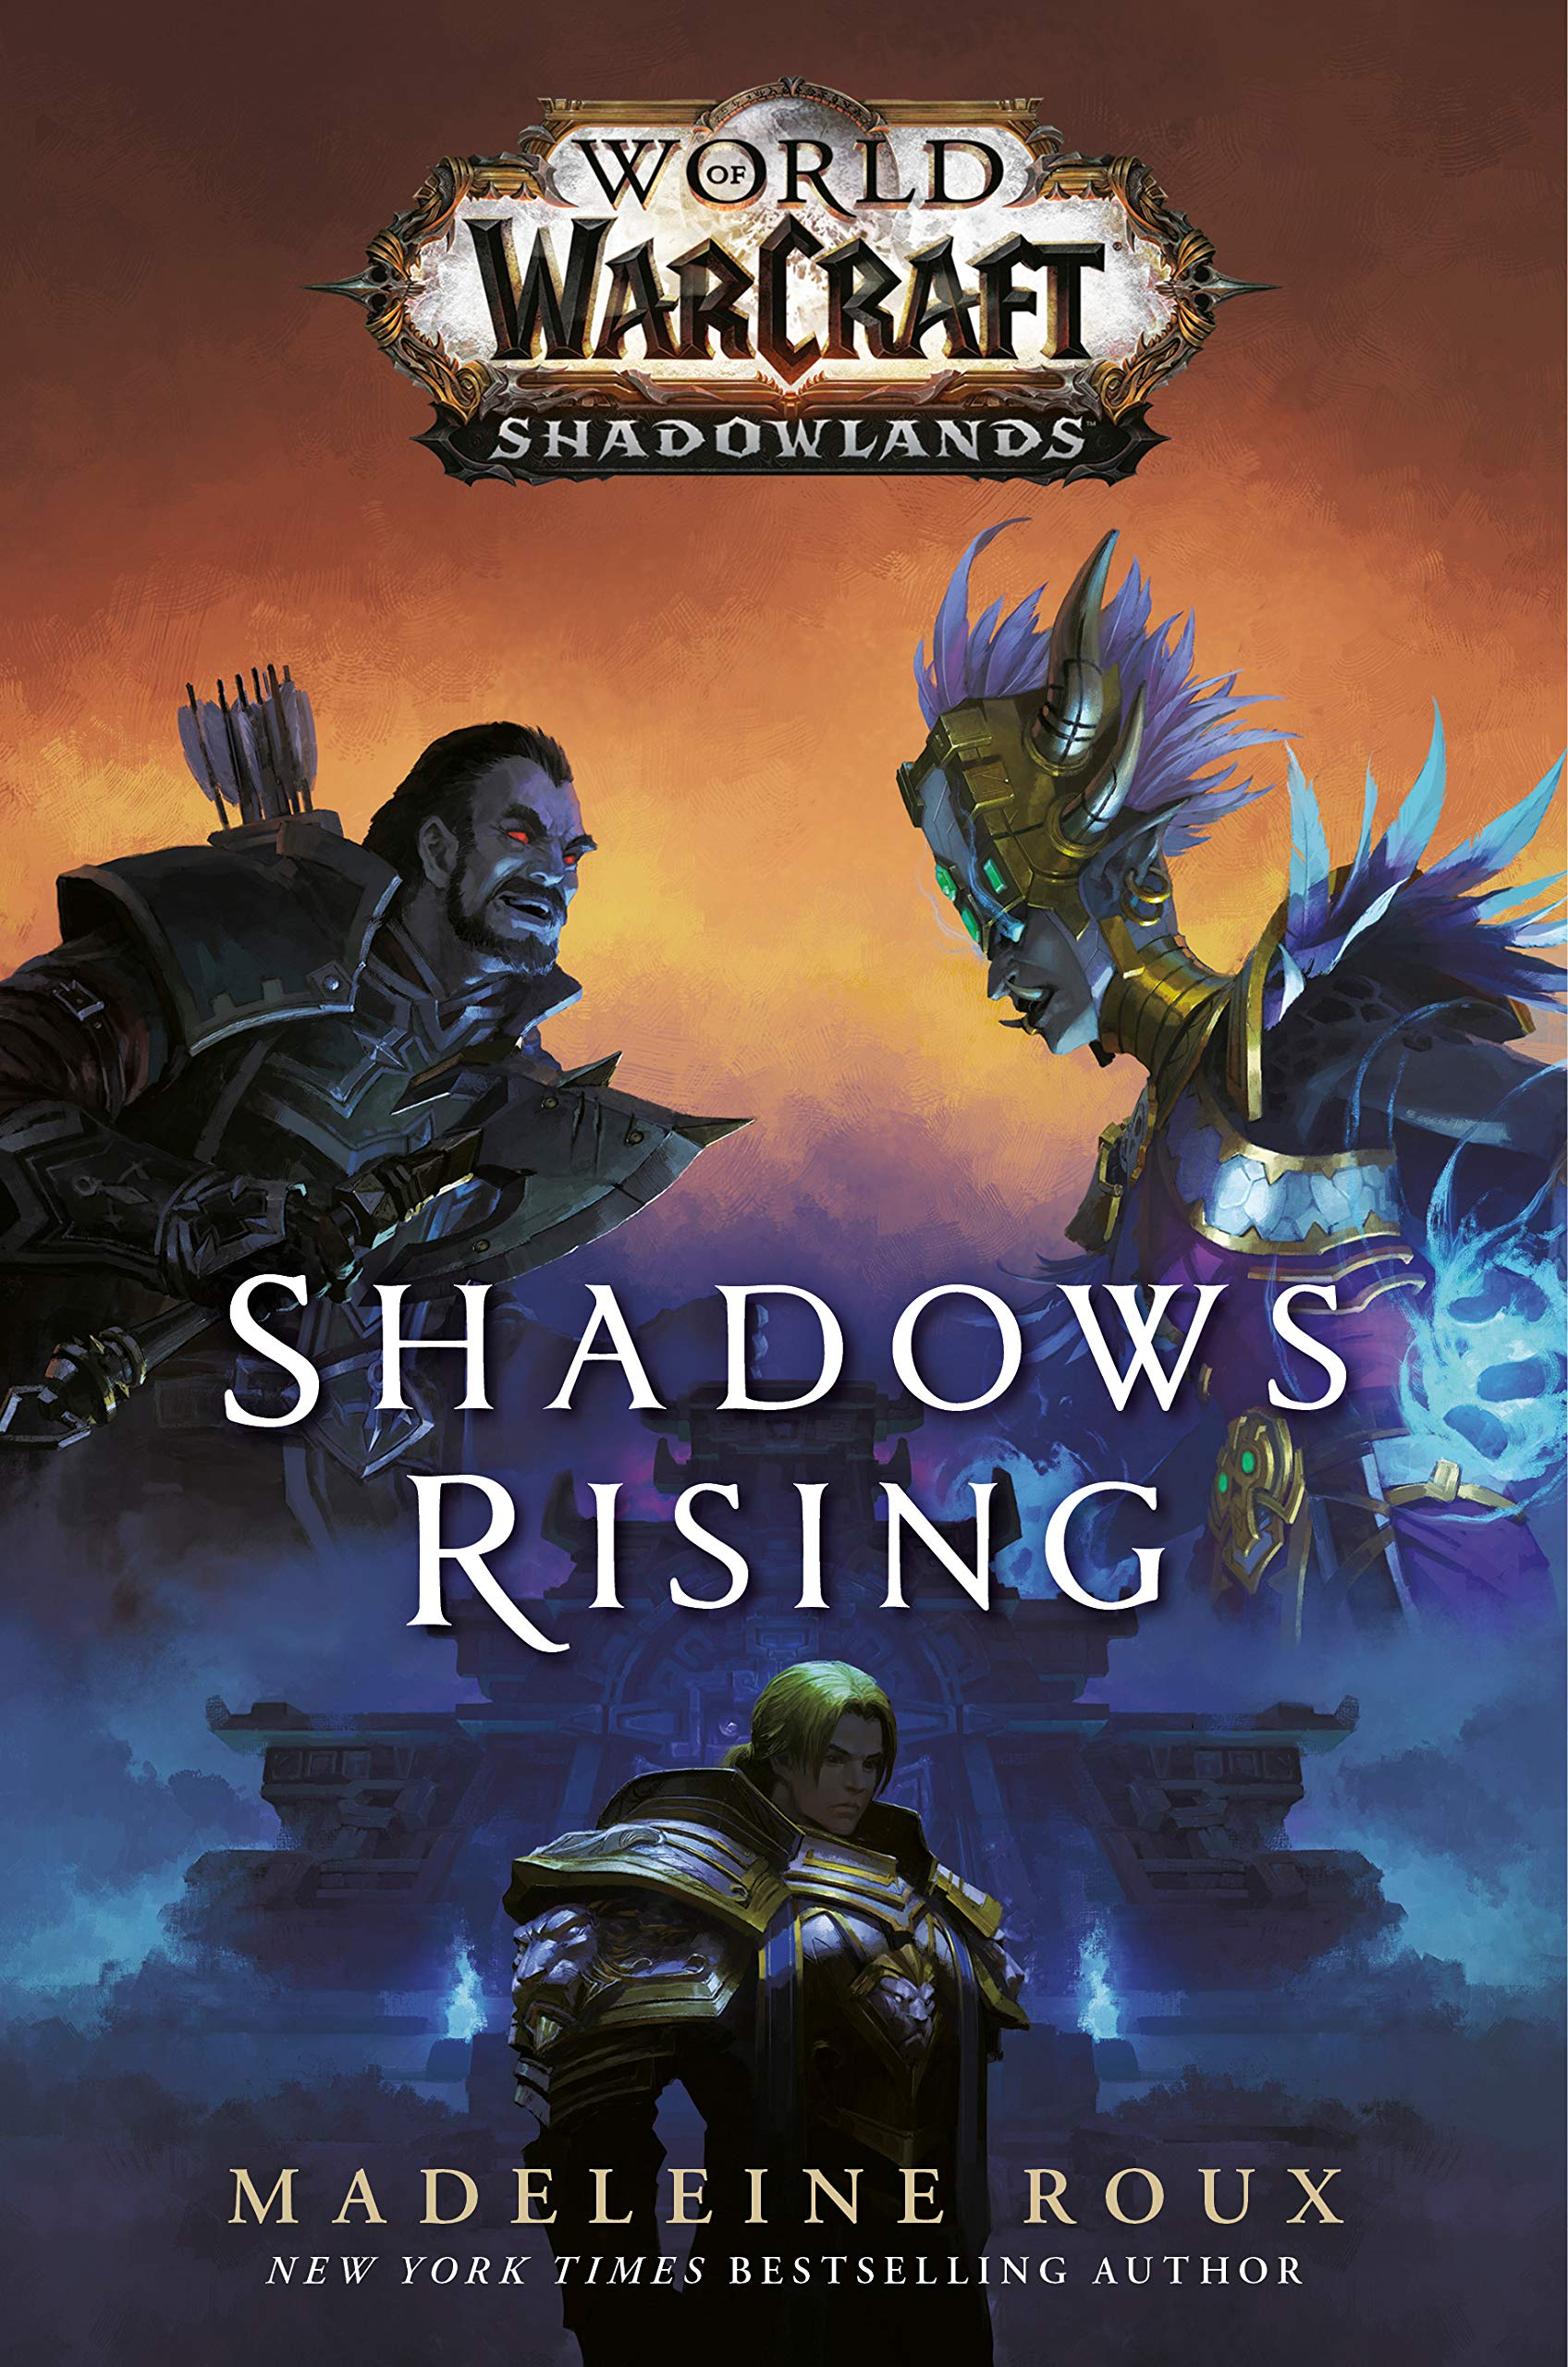 Amazon Com Shadows Rising World Of Warcraft Shadowlands